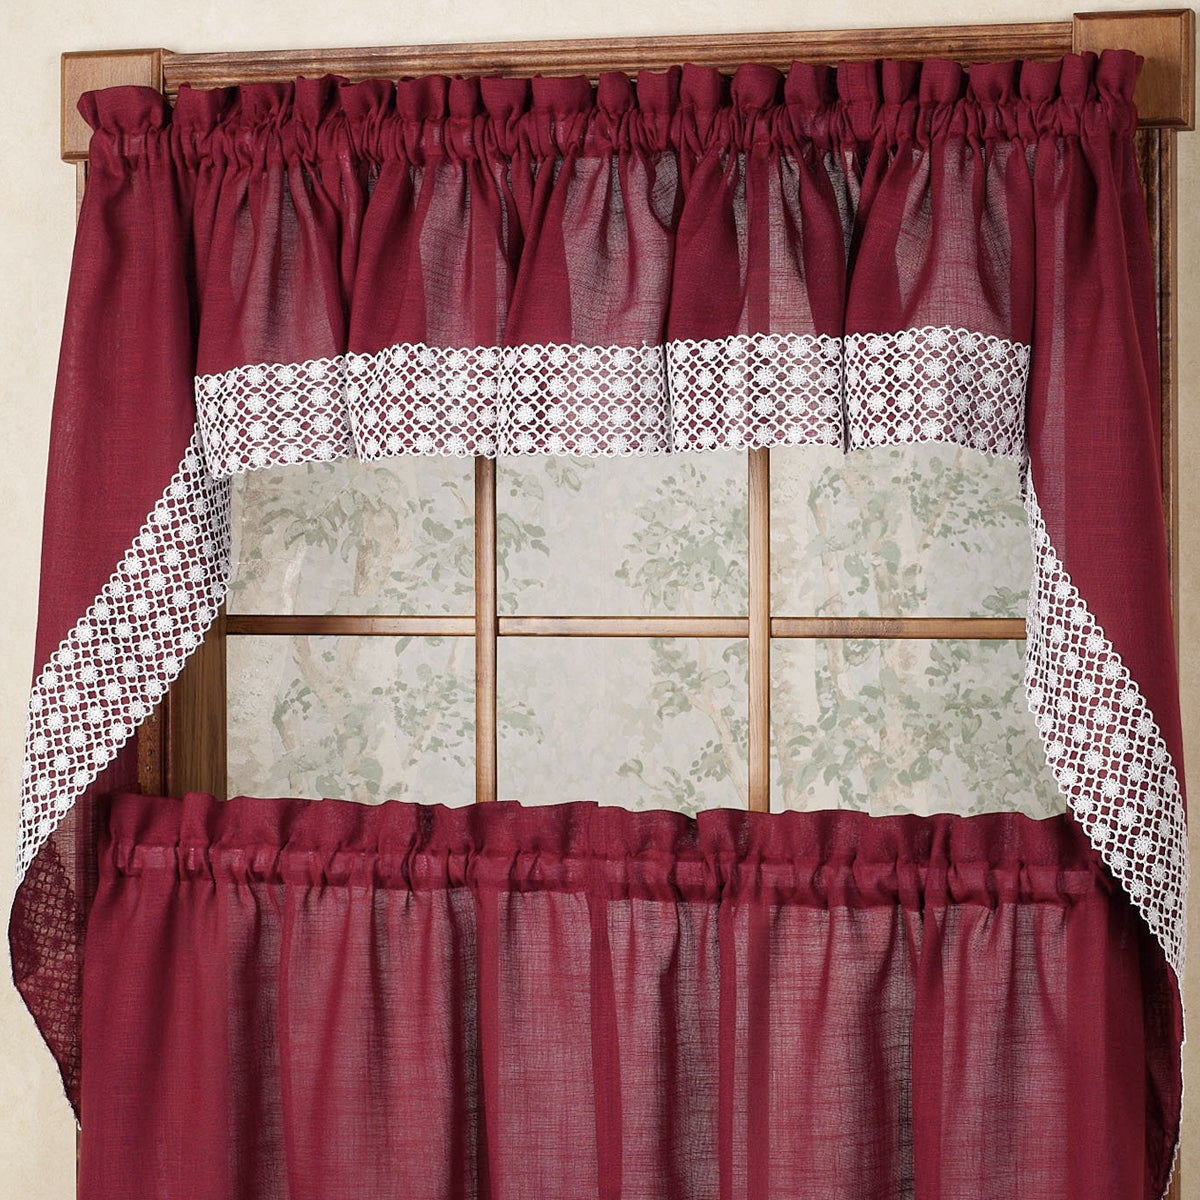 Burgundy Country Style Curtain Parts With White Daisy Lace Accent Tier, Swag And Valances Pertaining To Trendy Country Style Curtain Parts With White Daisy Lace Accent (View 6 of 20)